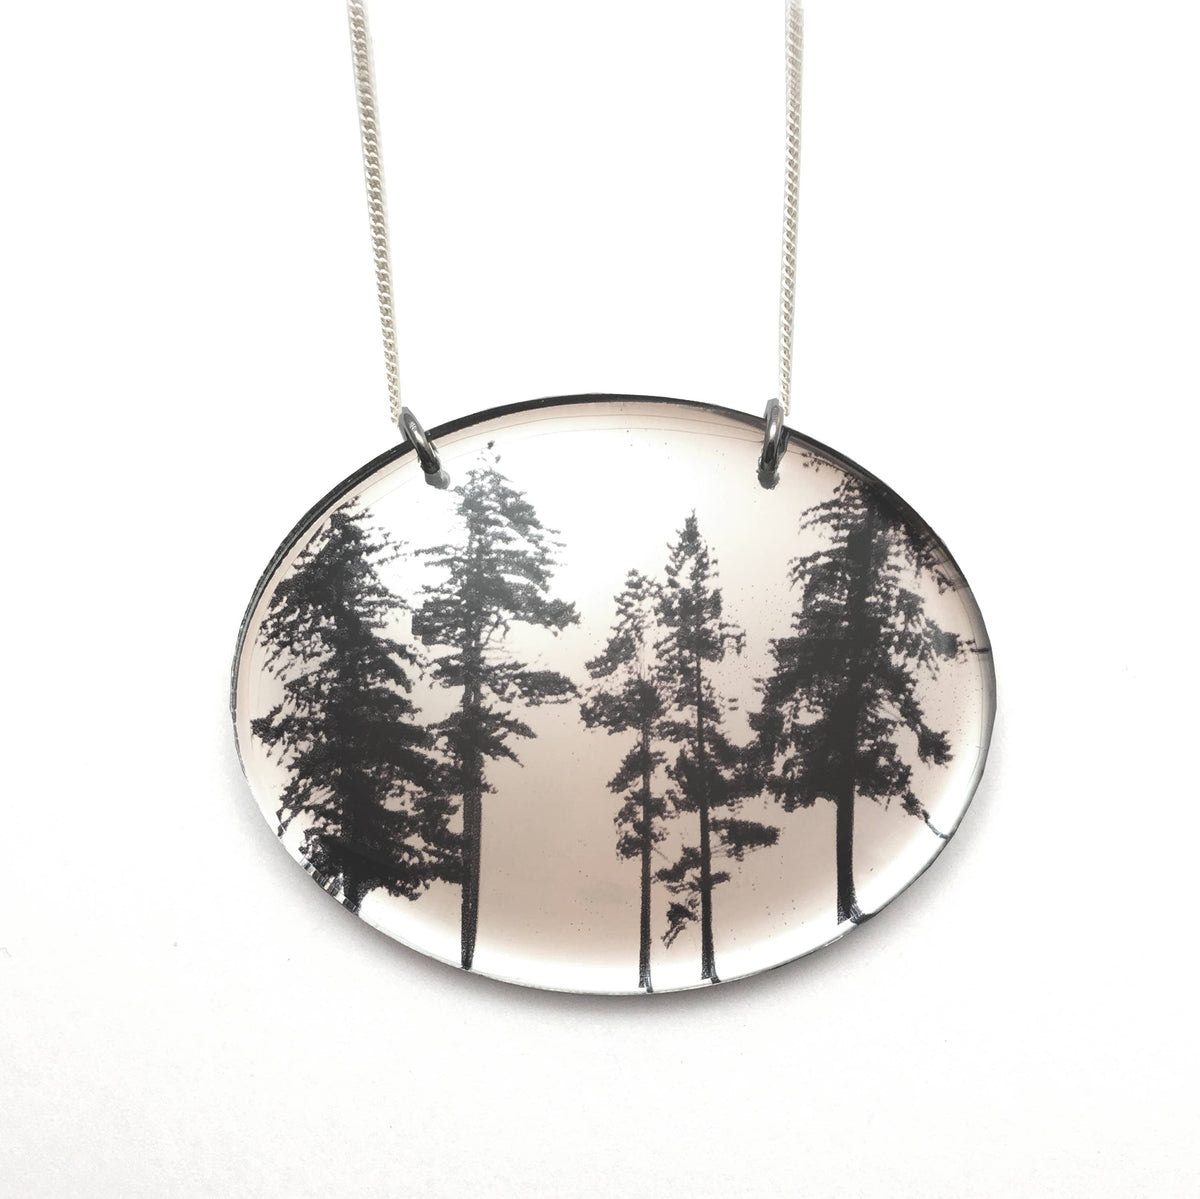 Black Drop Designs - Mirror Oval Forest Necklace